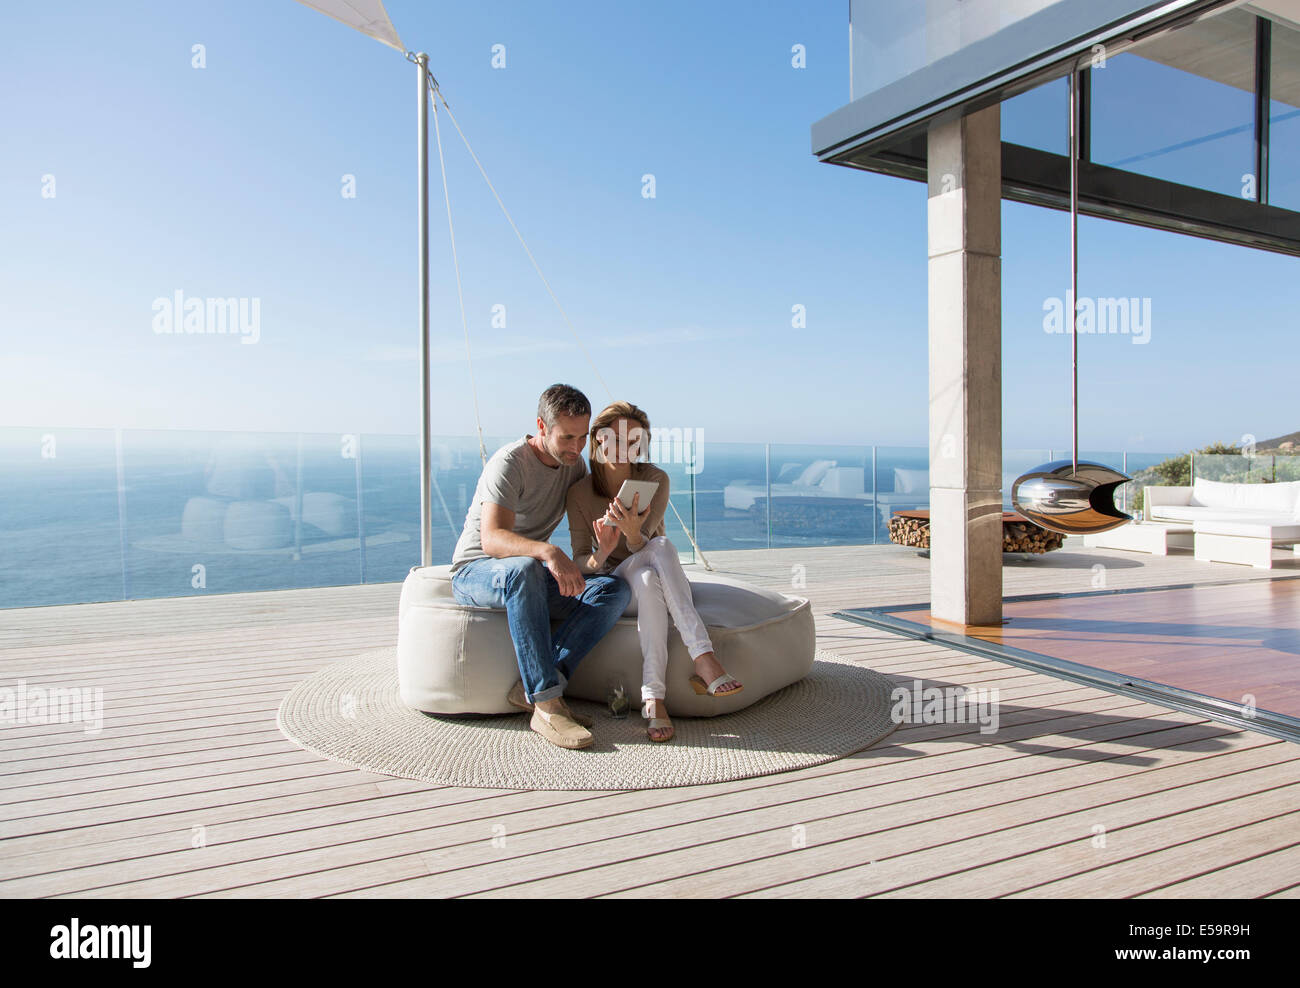 Couple using digital tablet on modern balcony - Stock Image